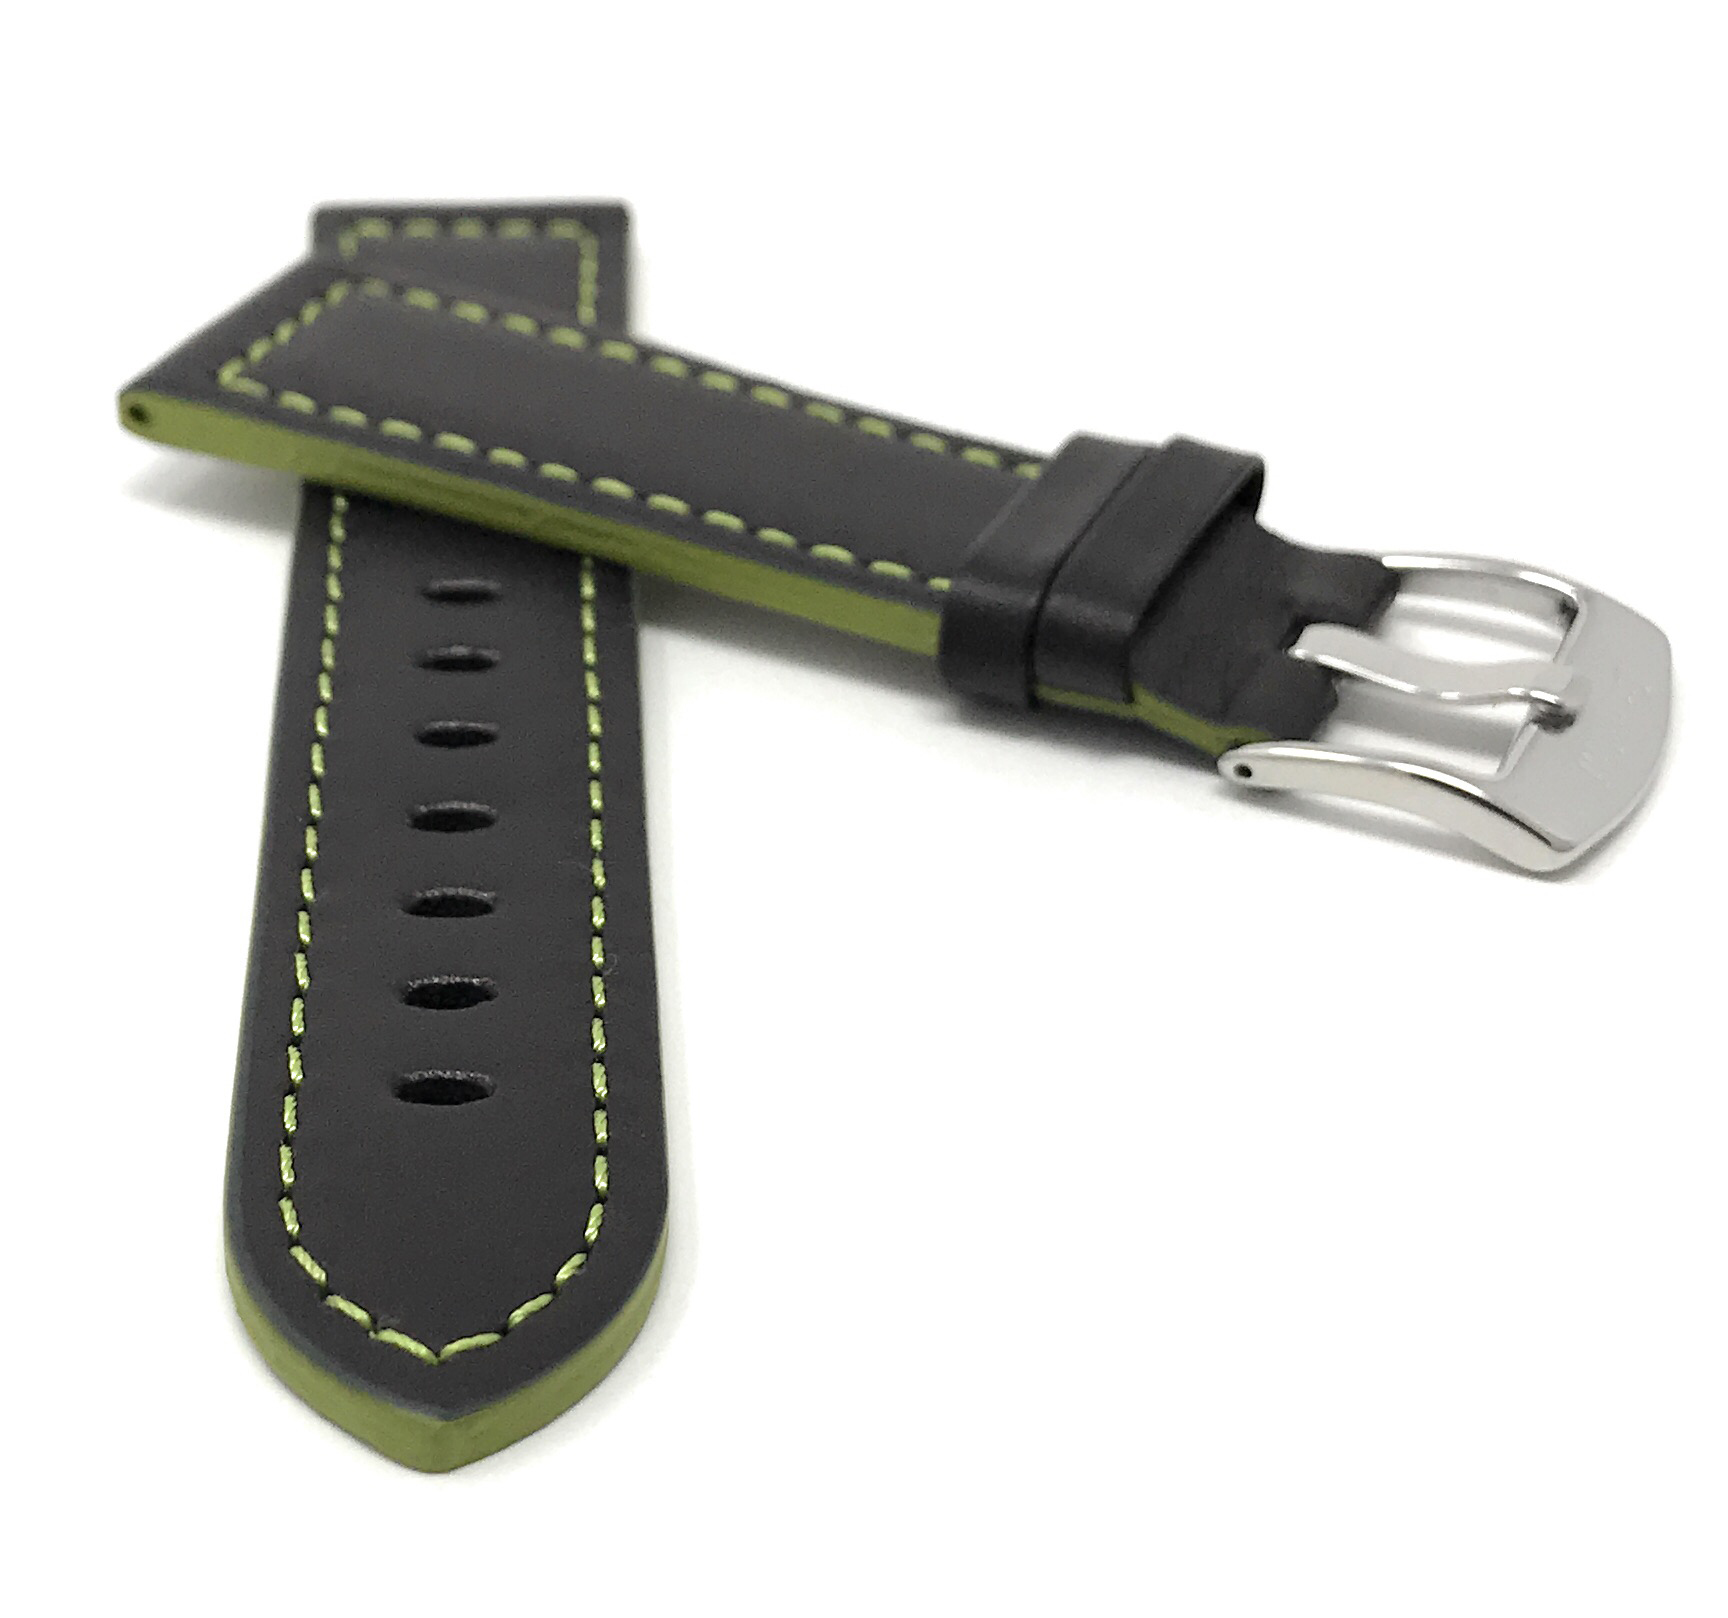 Bandini-Leather-Watch-Band-Racer-Strap-5-Colors-18-20-22-24mm-Extra-Long-Too thumbnail 26